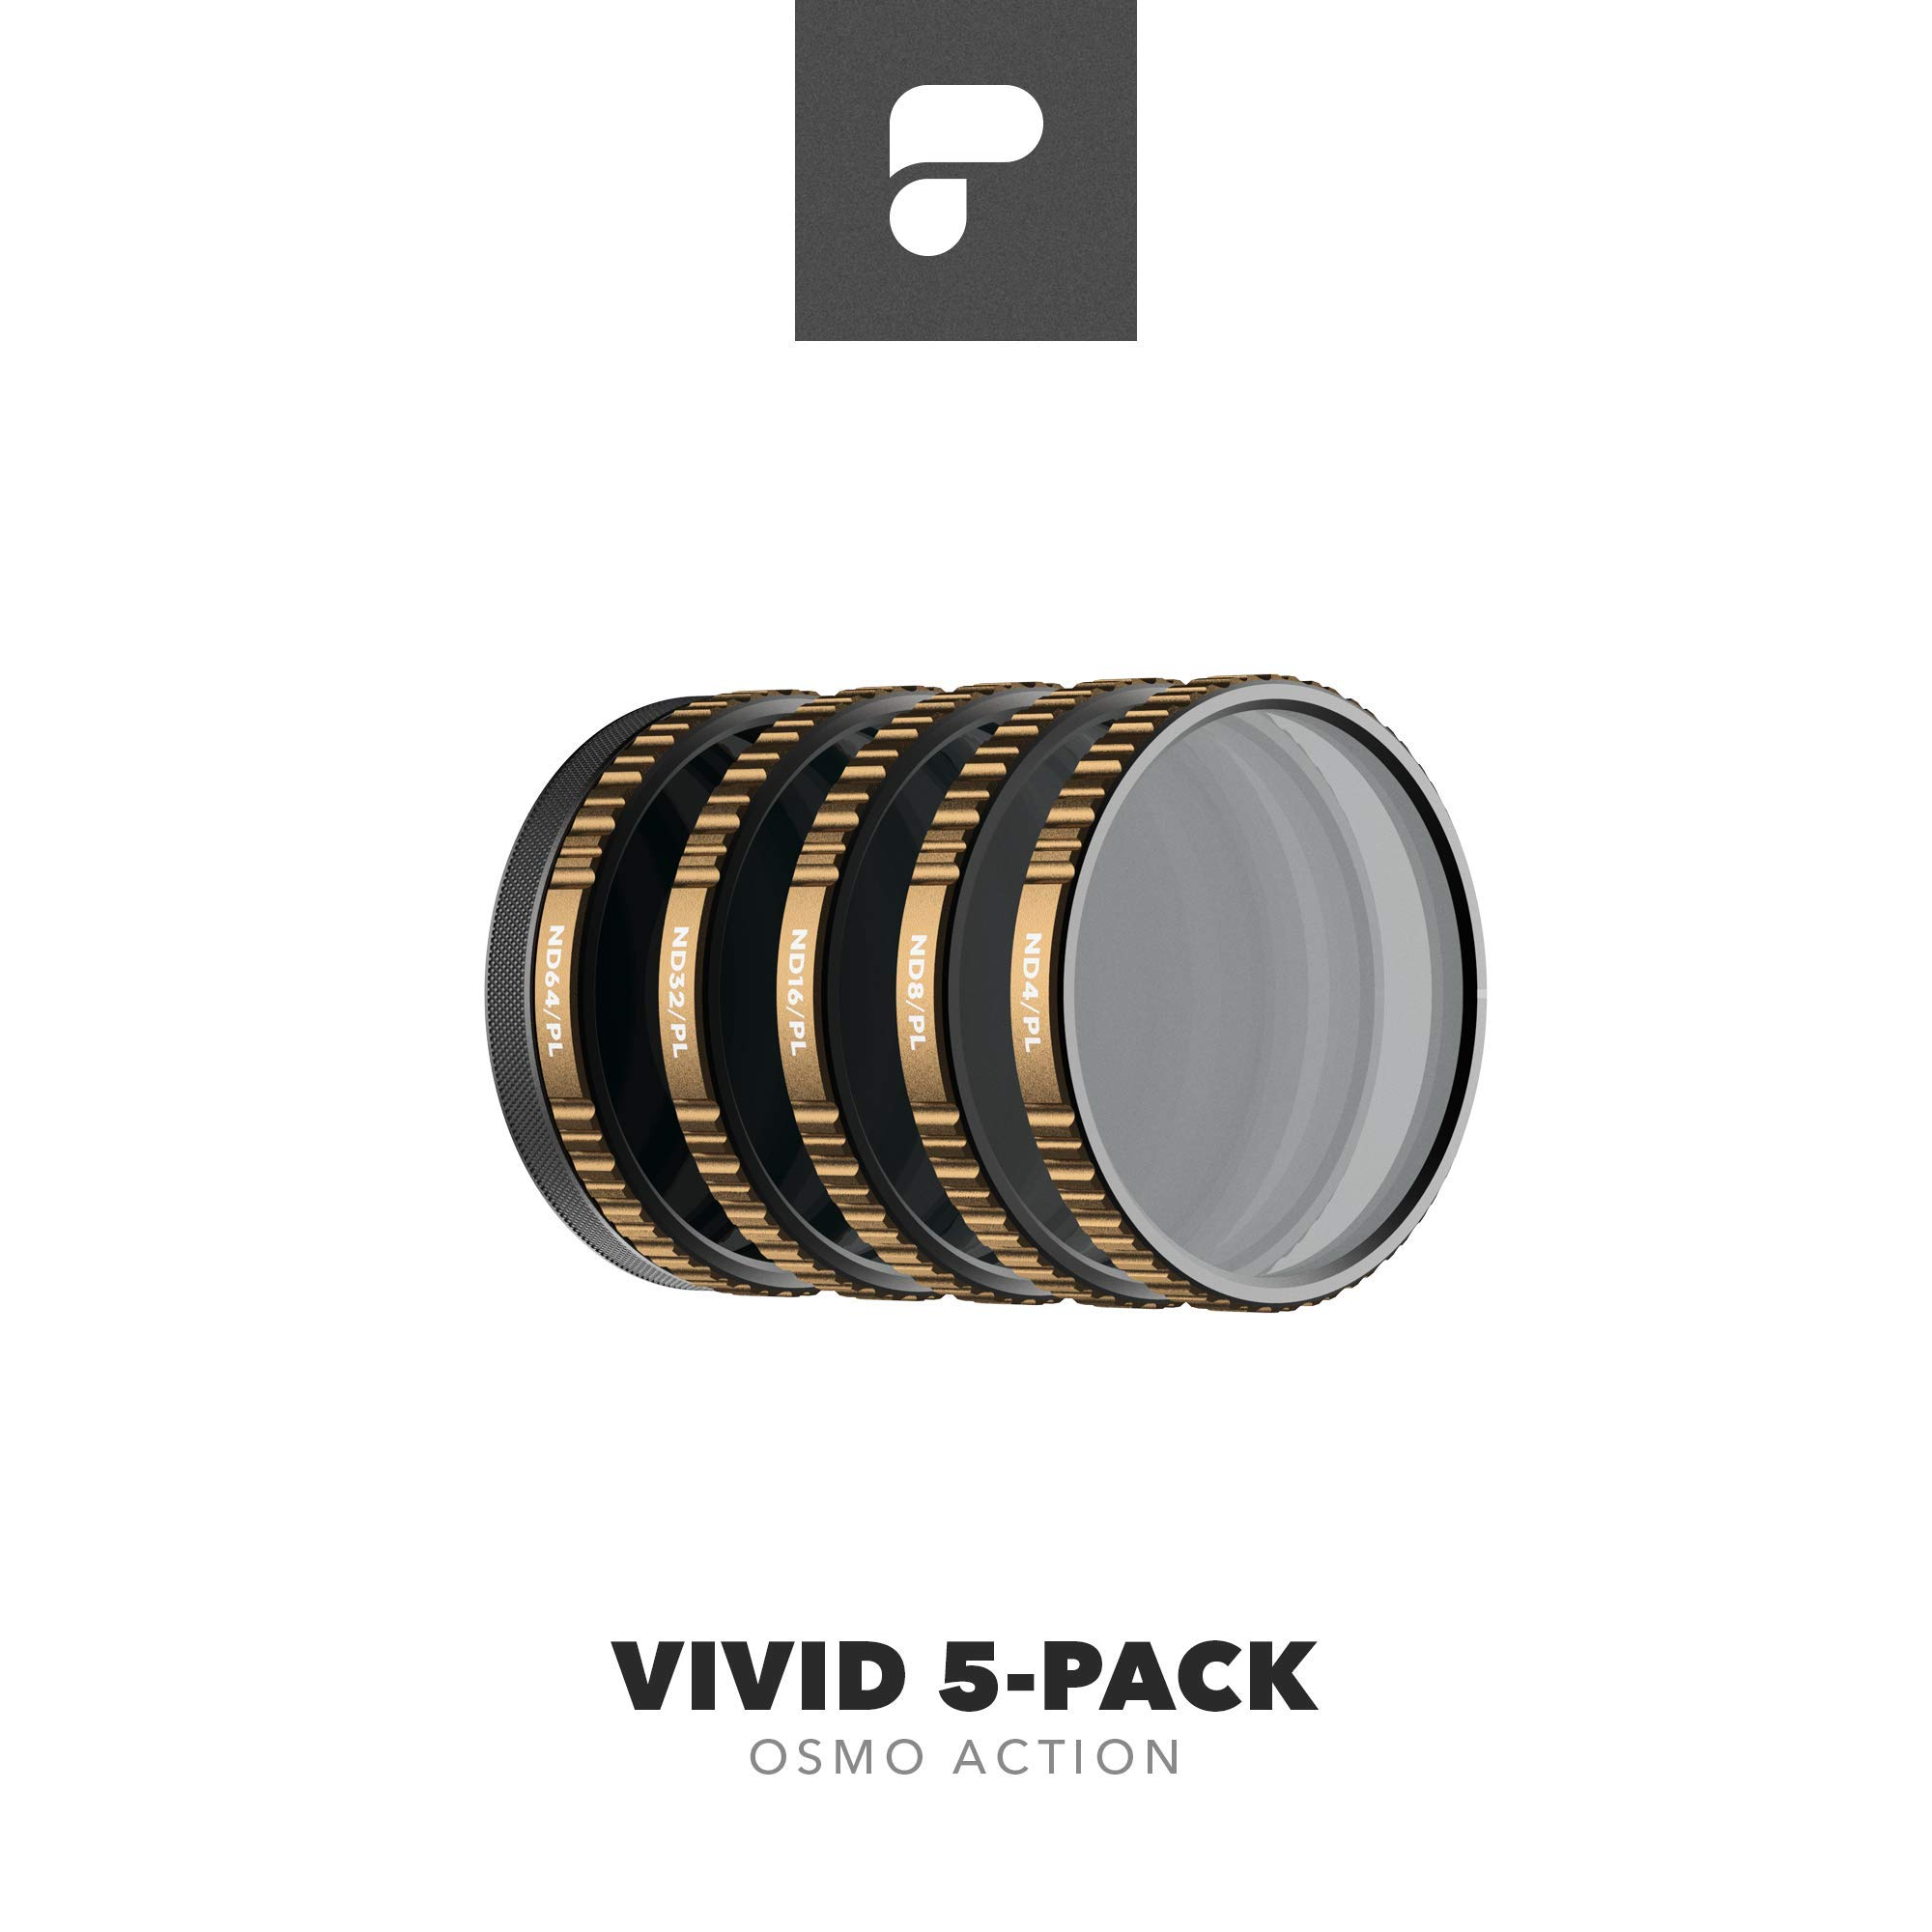 PolarPro Vivid Filter 5-Pack for DJI Osmo Action (Magnetic HotSwap Filter System) by PolarPro